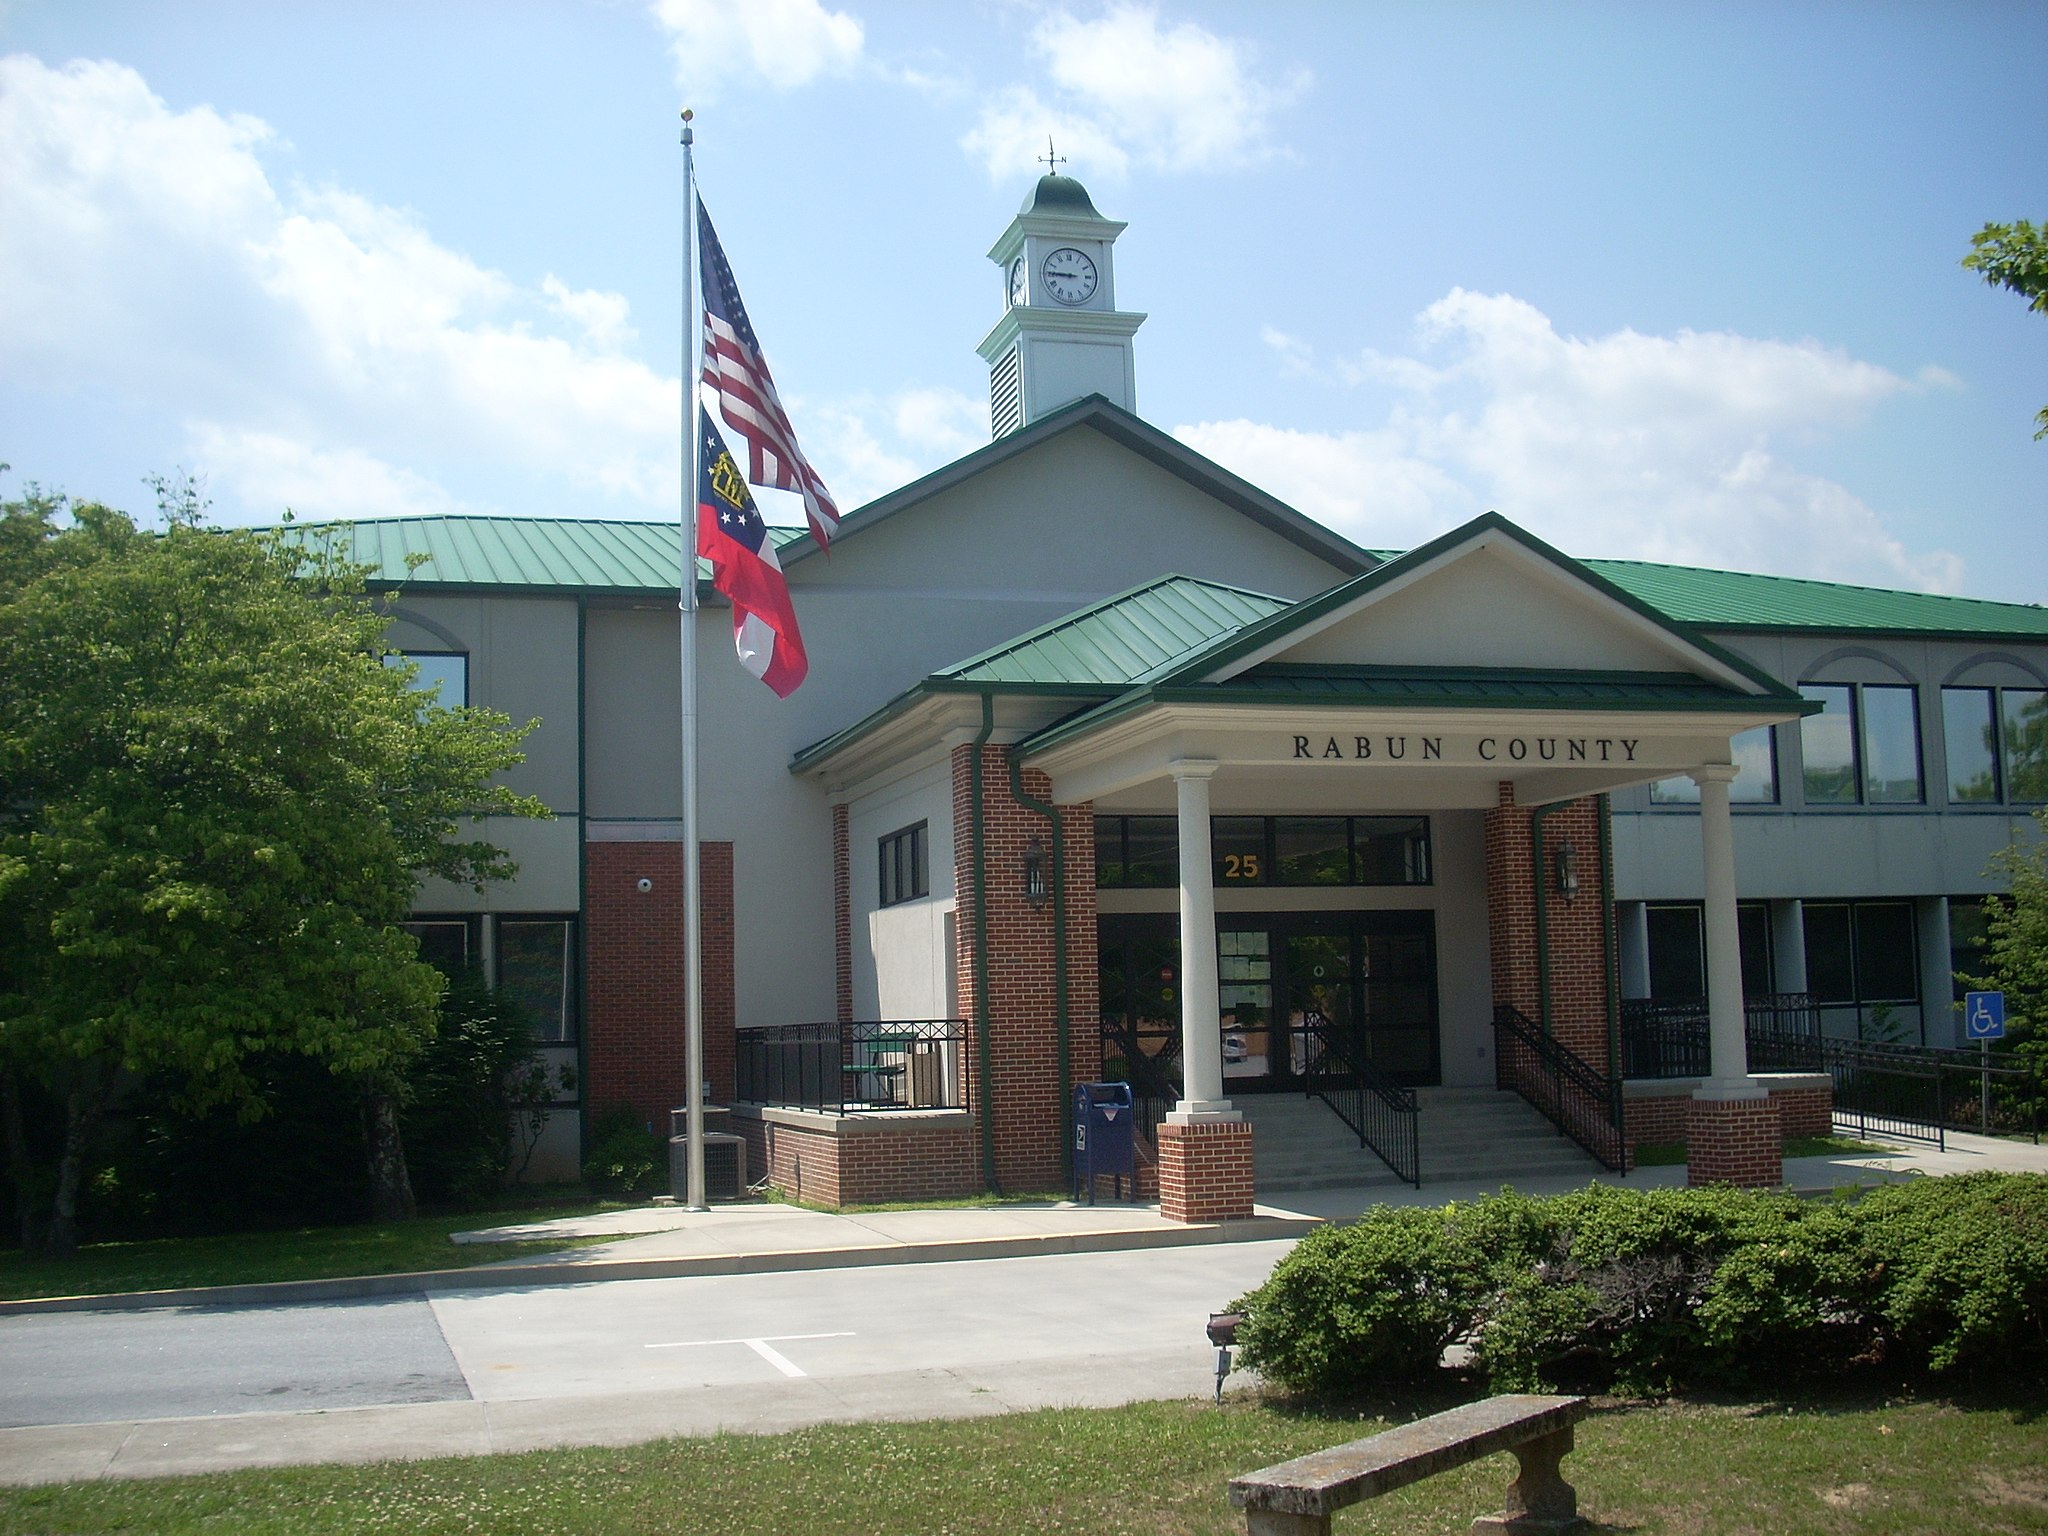 Rabun County Courthouse, Clayton, Georgia